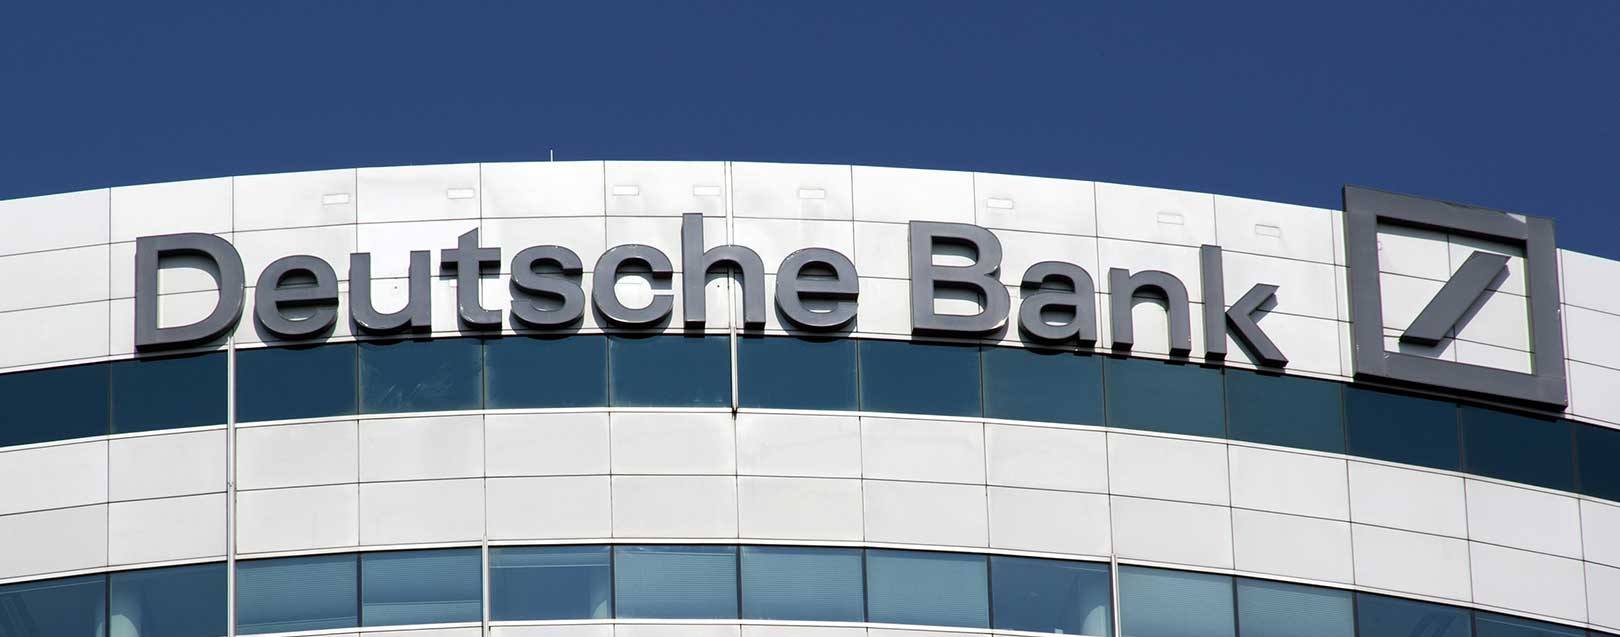 Deutsche Bank agree to $7.2 bn settlement with US over risky mortgages